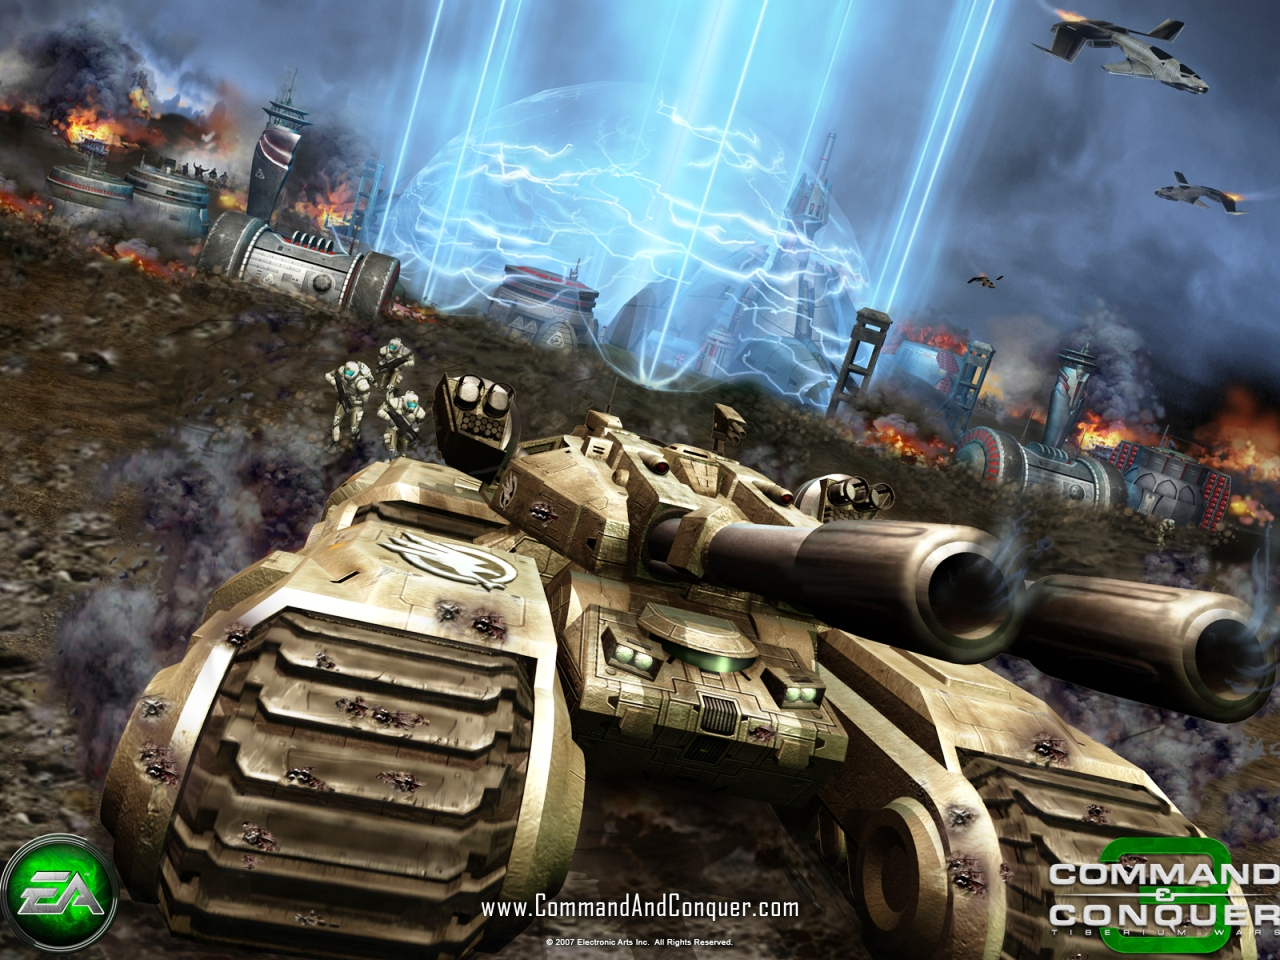 Command And Conquer Wallpaper: Command And Conquer 3 Tiberium Wars Wallpaper